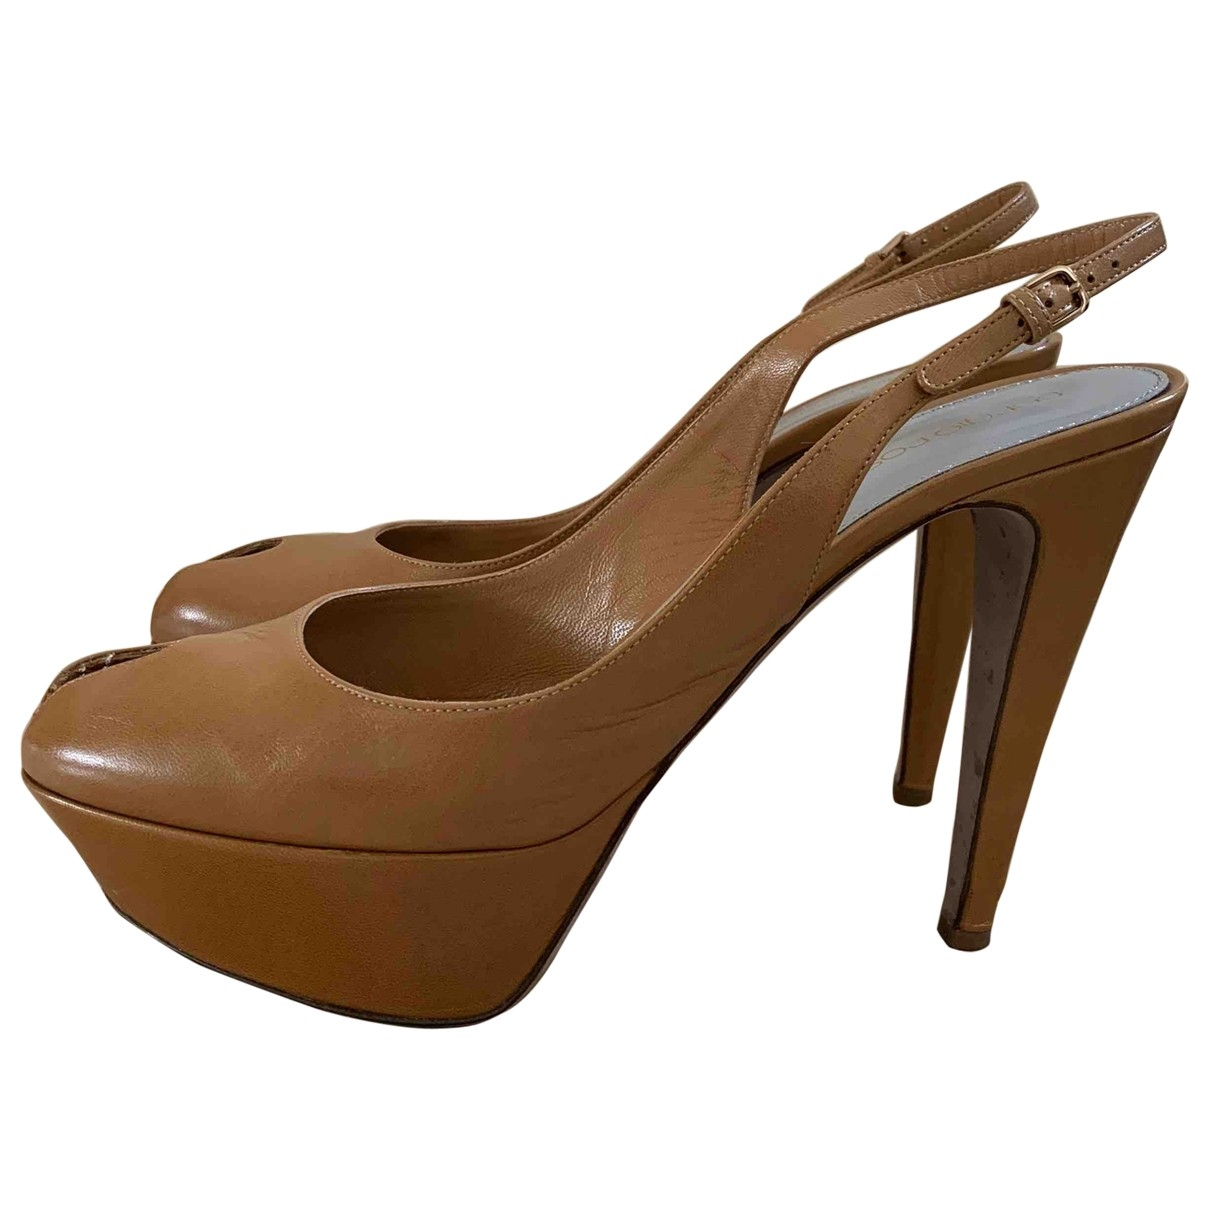 Sergio Rossi \N Camel Leather Sandals for Women 39 EU